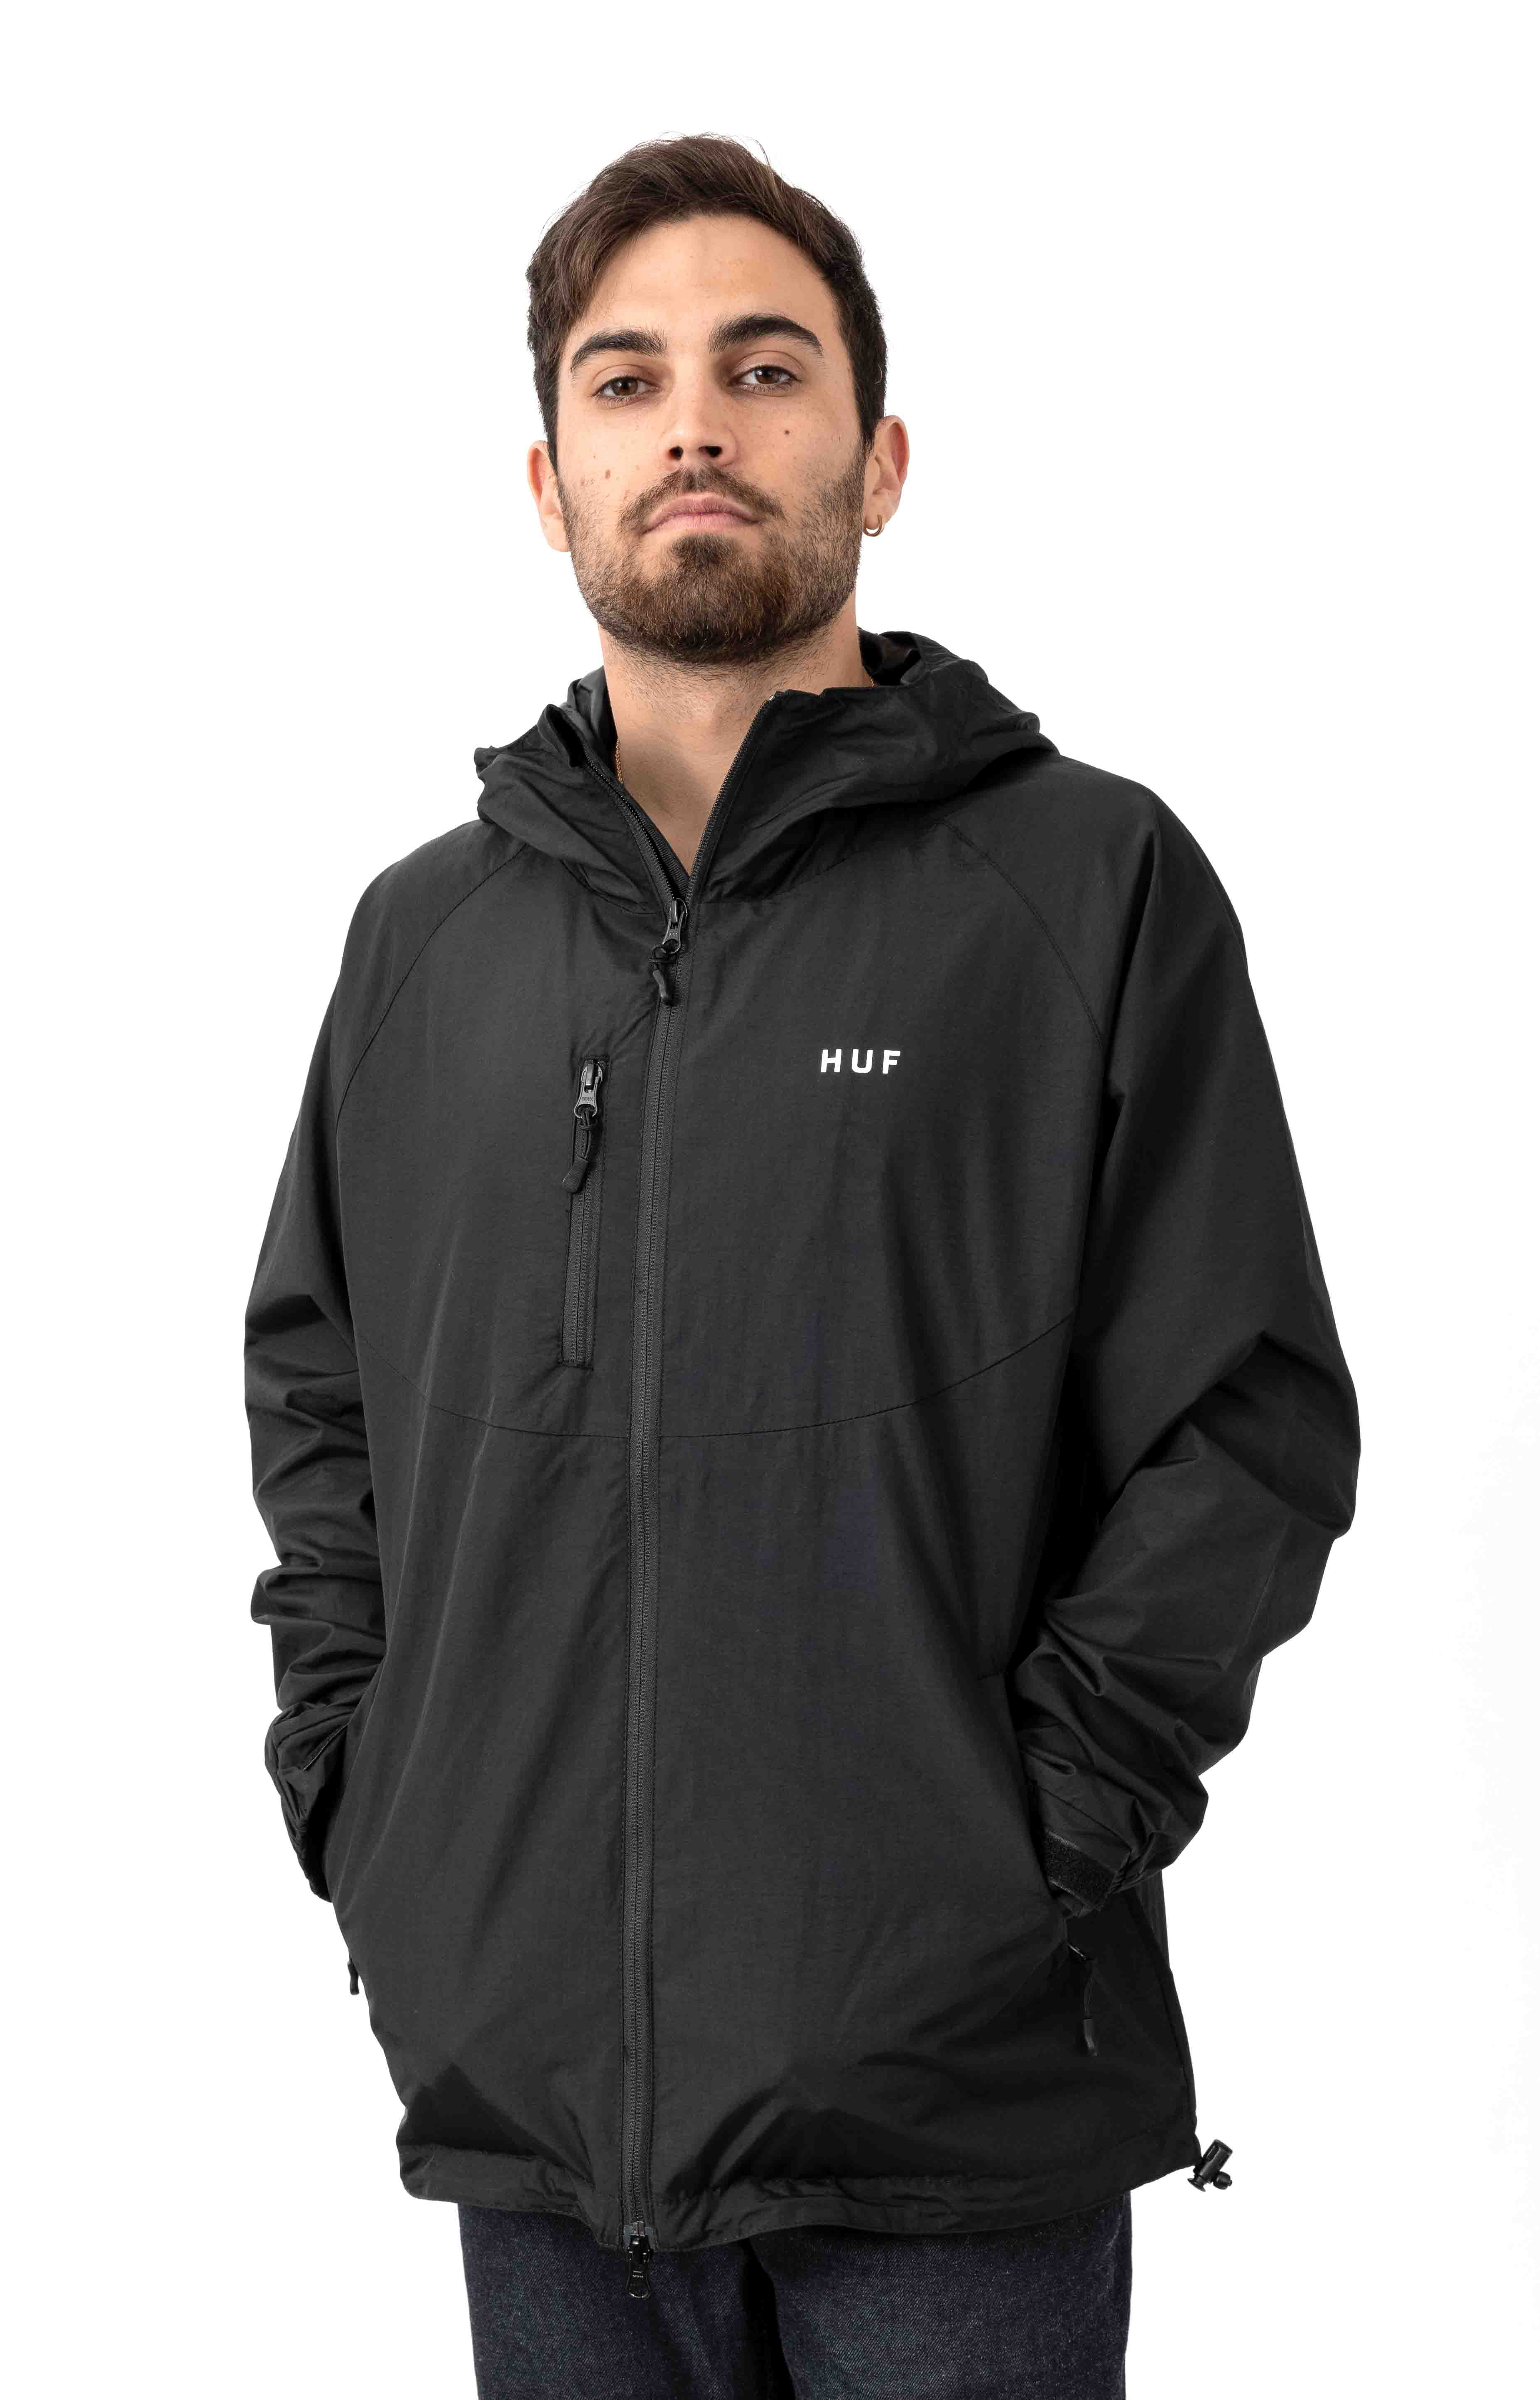 Standard 2 Shell Jacket - Black/White